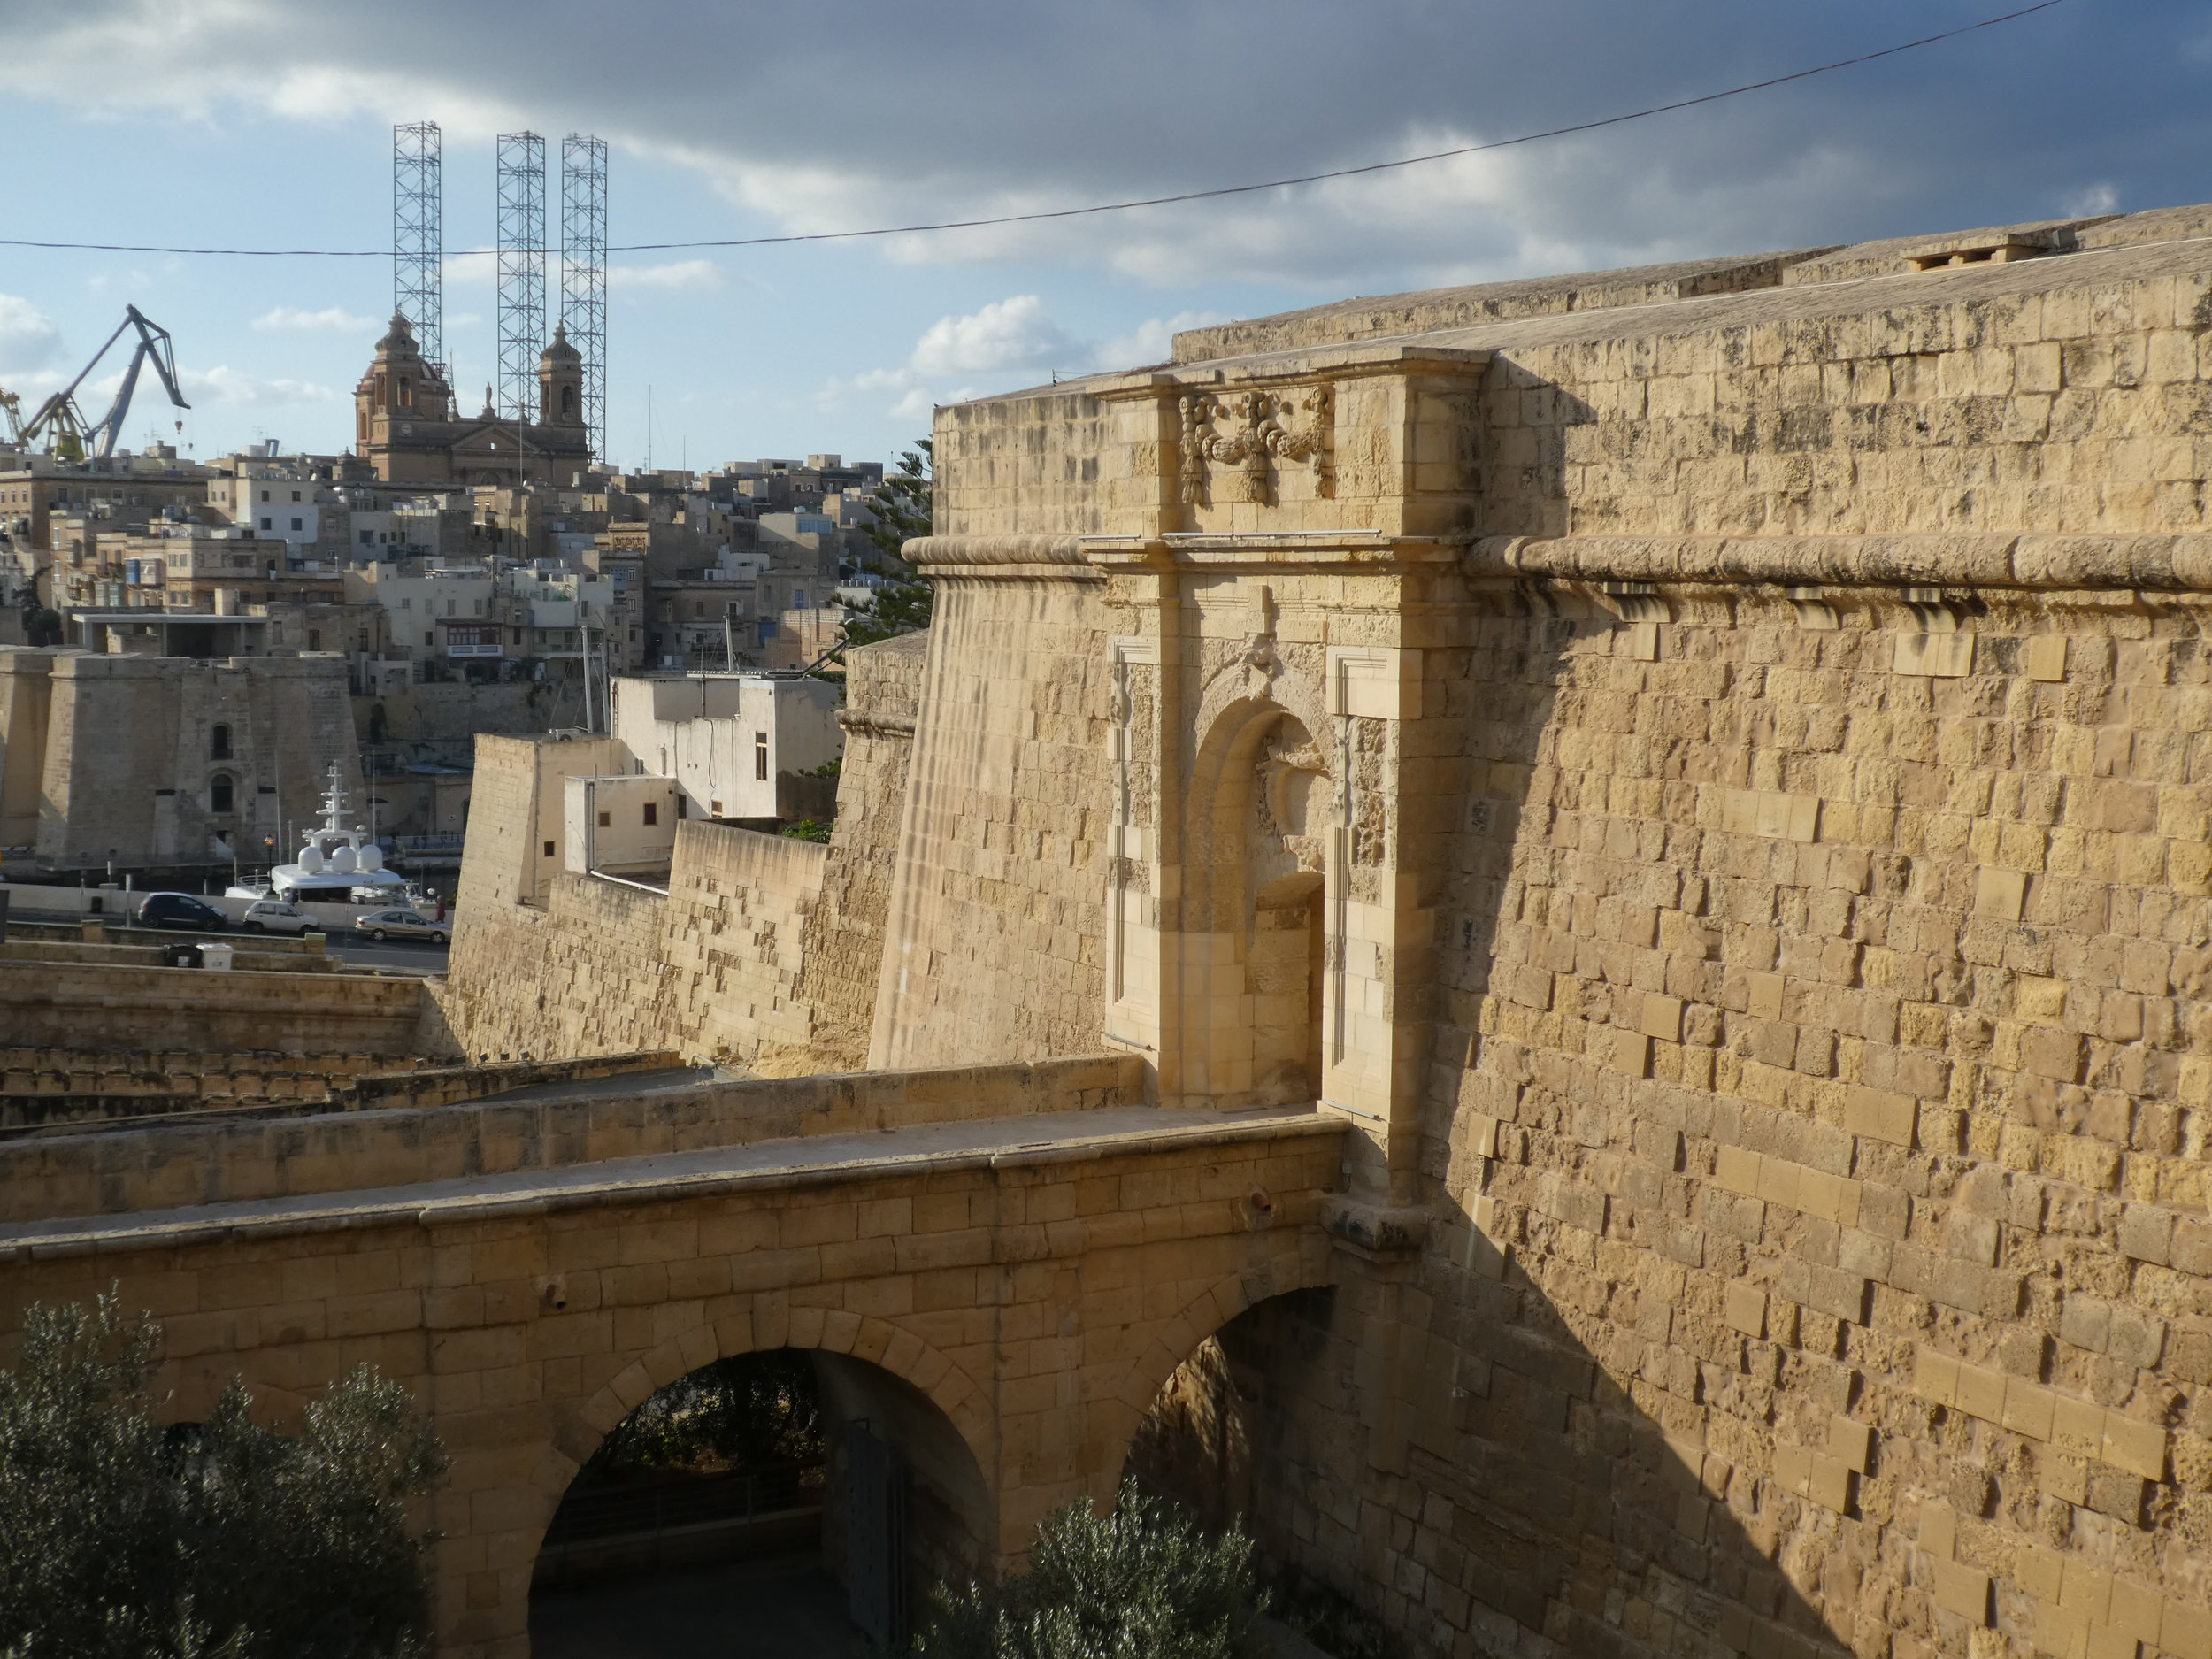 After 15 minutes walk, exiting the Birgu Ditch